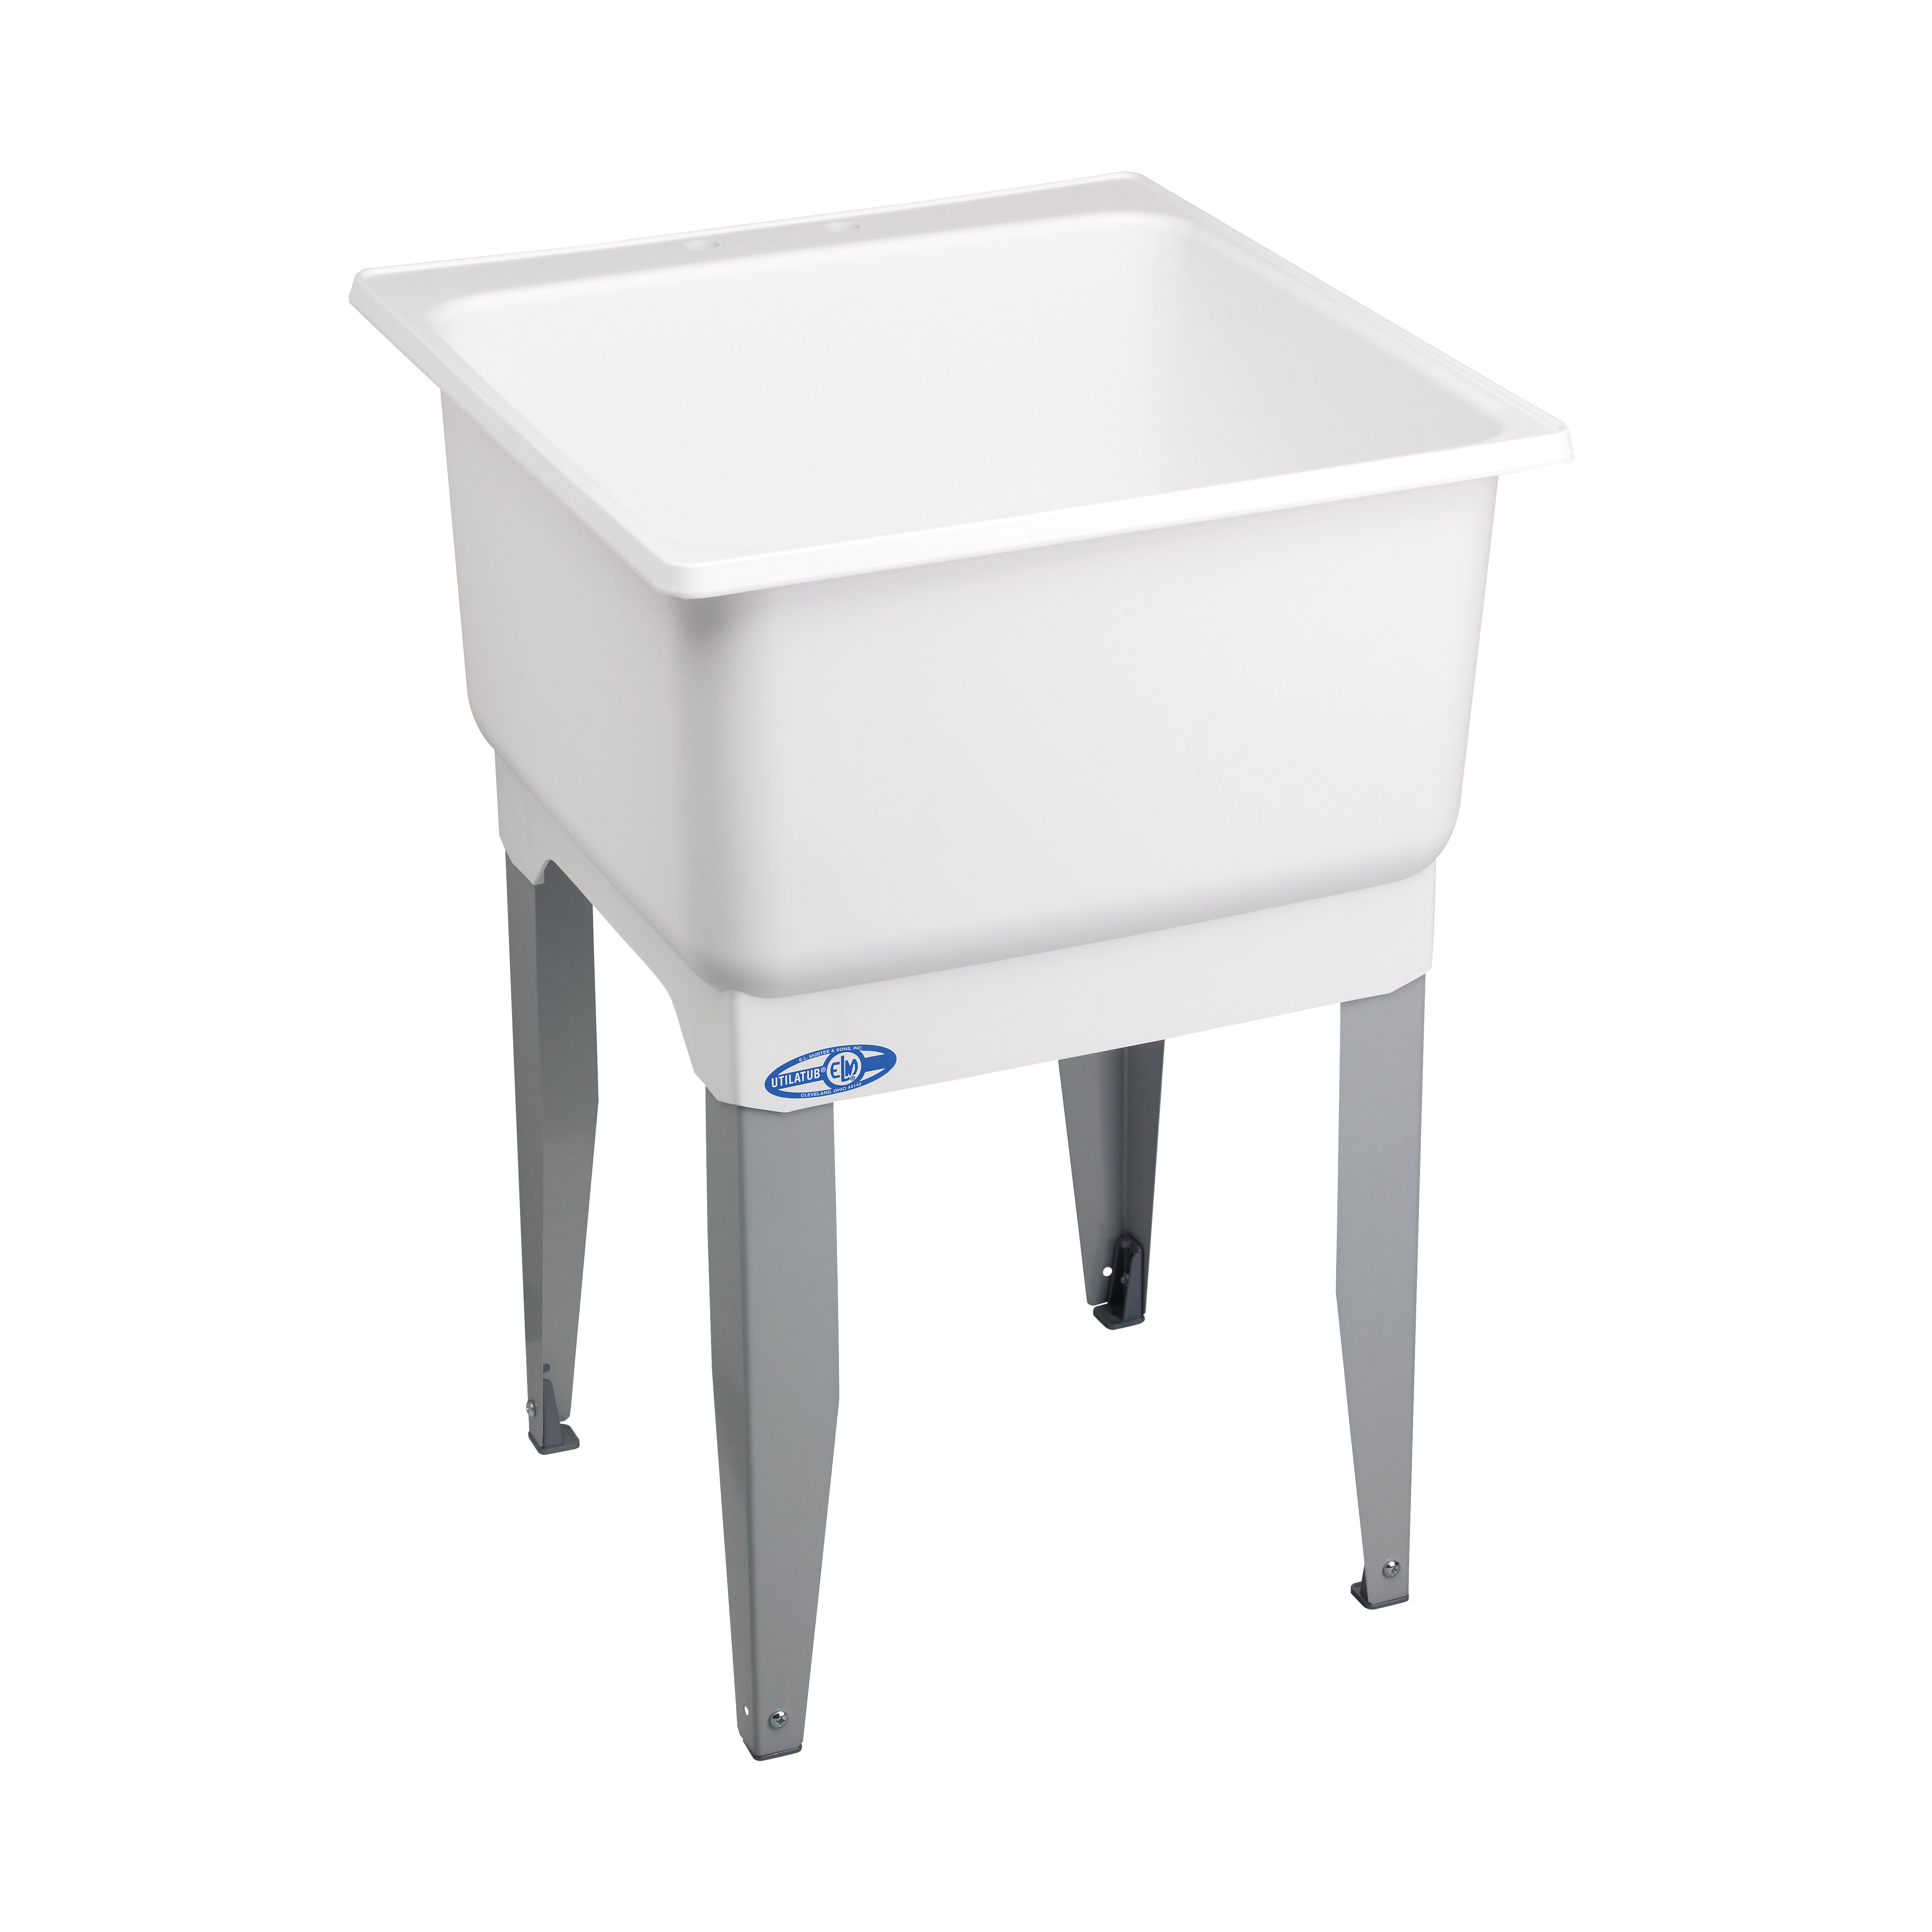 Picture of ELM UTILATUB 14 Laundry Tub, 20 gal Capacity, 33 in OAH, Polypropylene, White, Floor Mounting, 1-Bowl